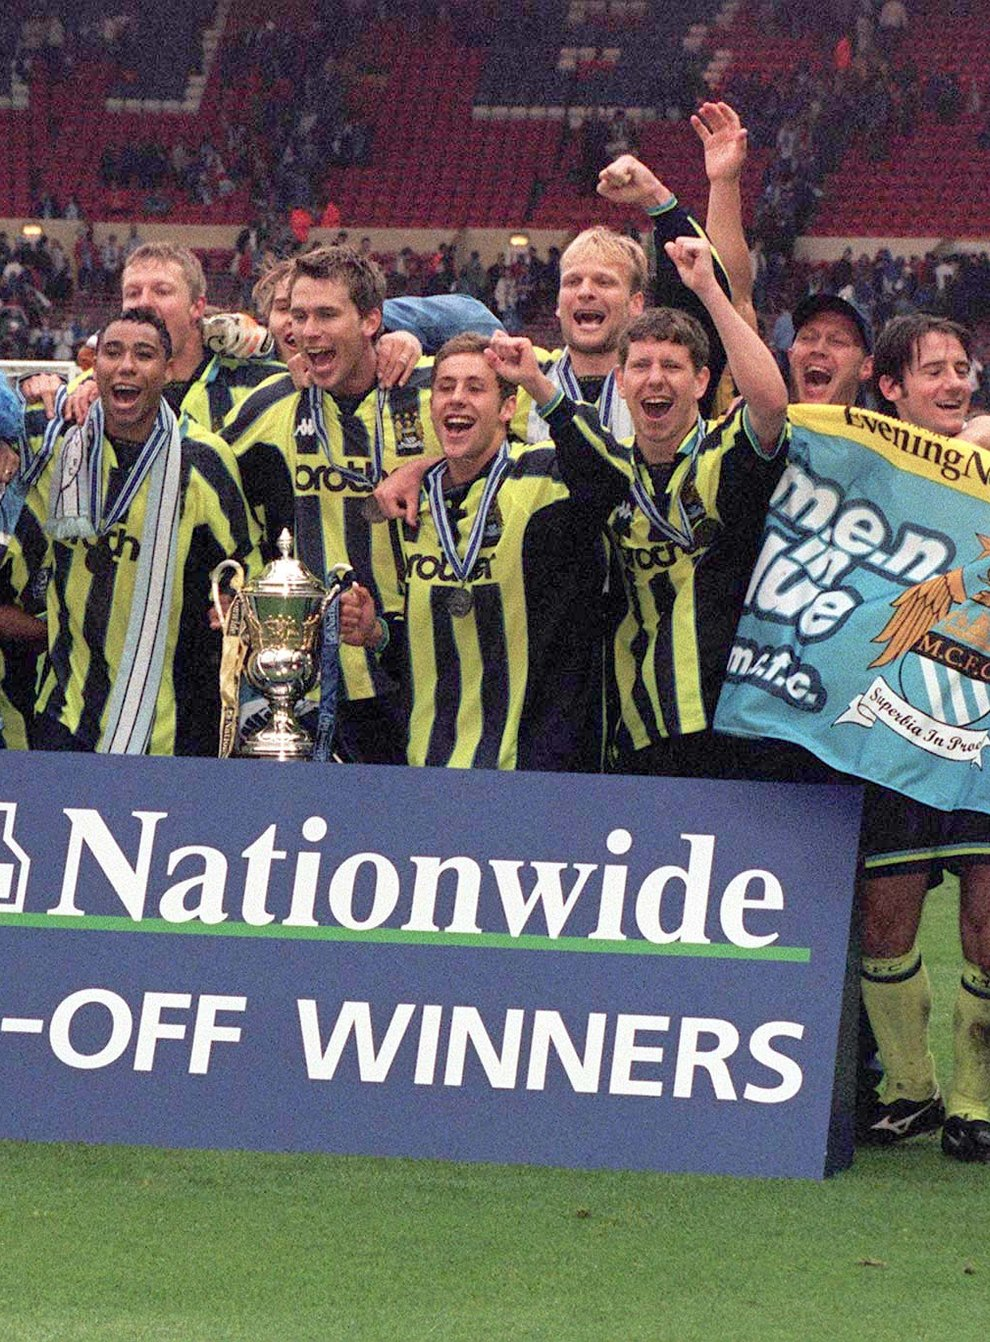 Champions League finalists Manchester City were playing in the Second Division play-off final in 1999